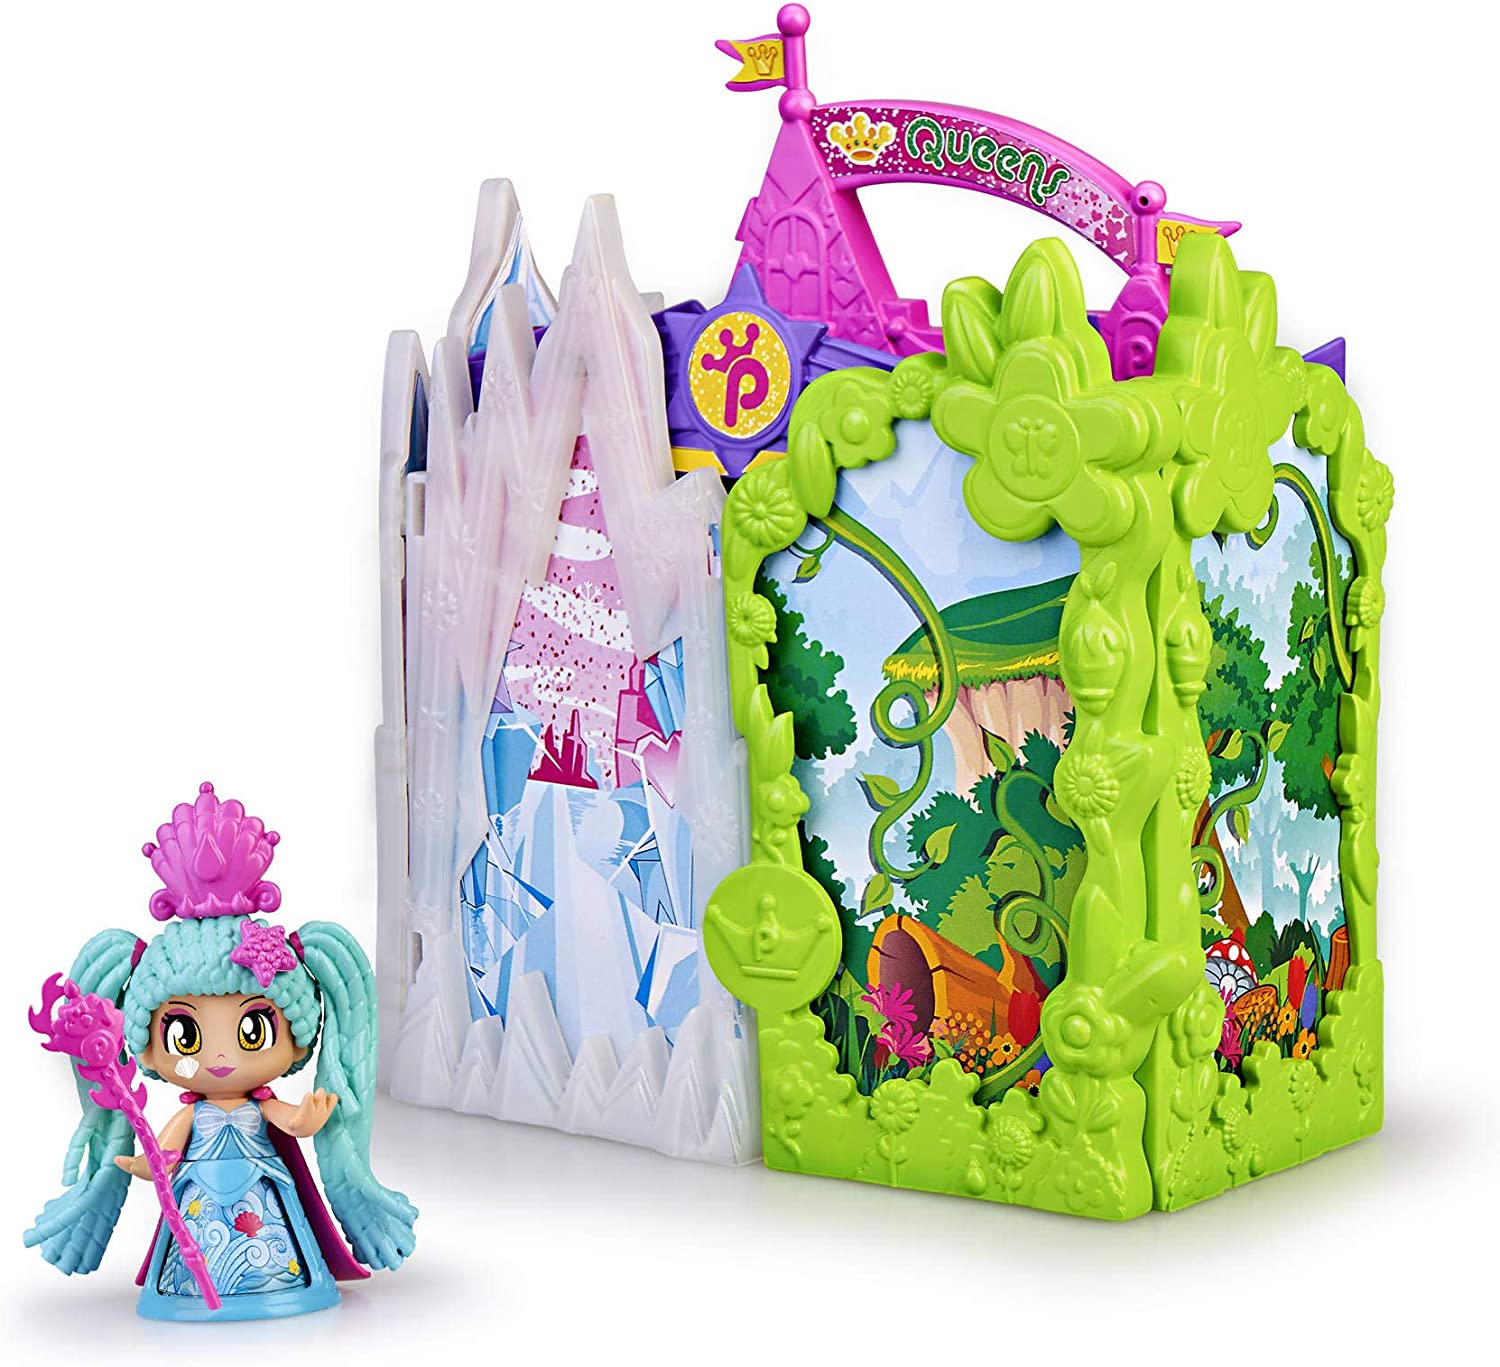 700015574 Queen Castle Figurines Toys Pinypon